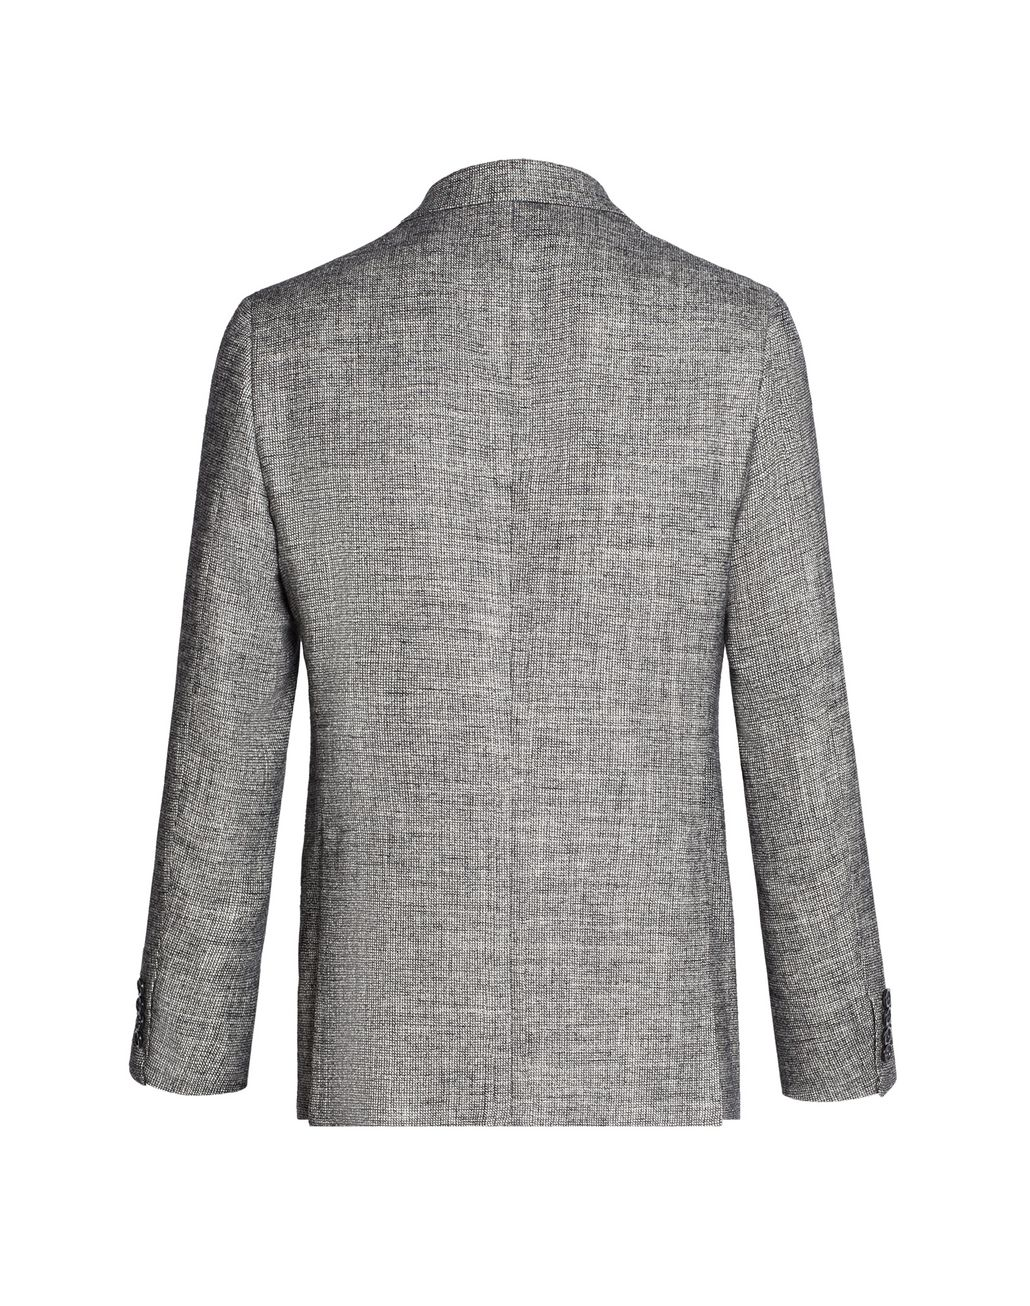 BRIONI Grey and White Ravello Jacket Jackets U r